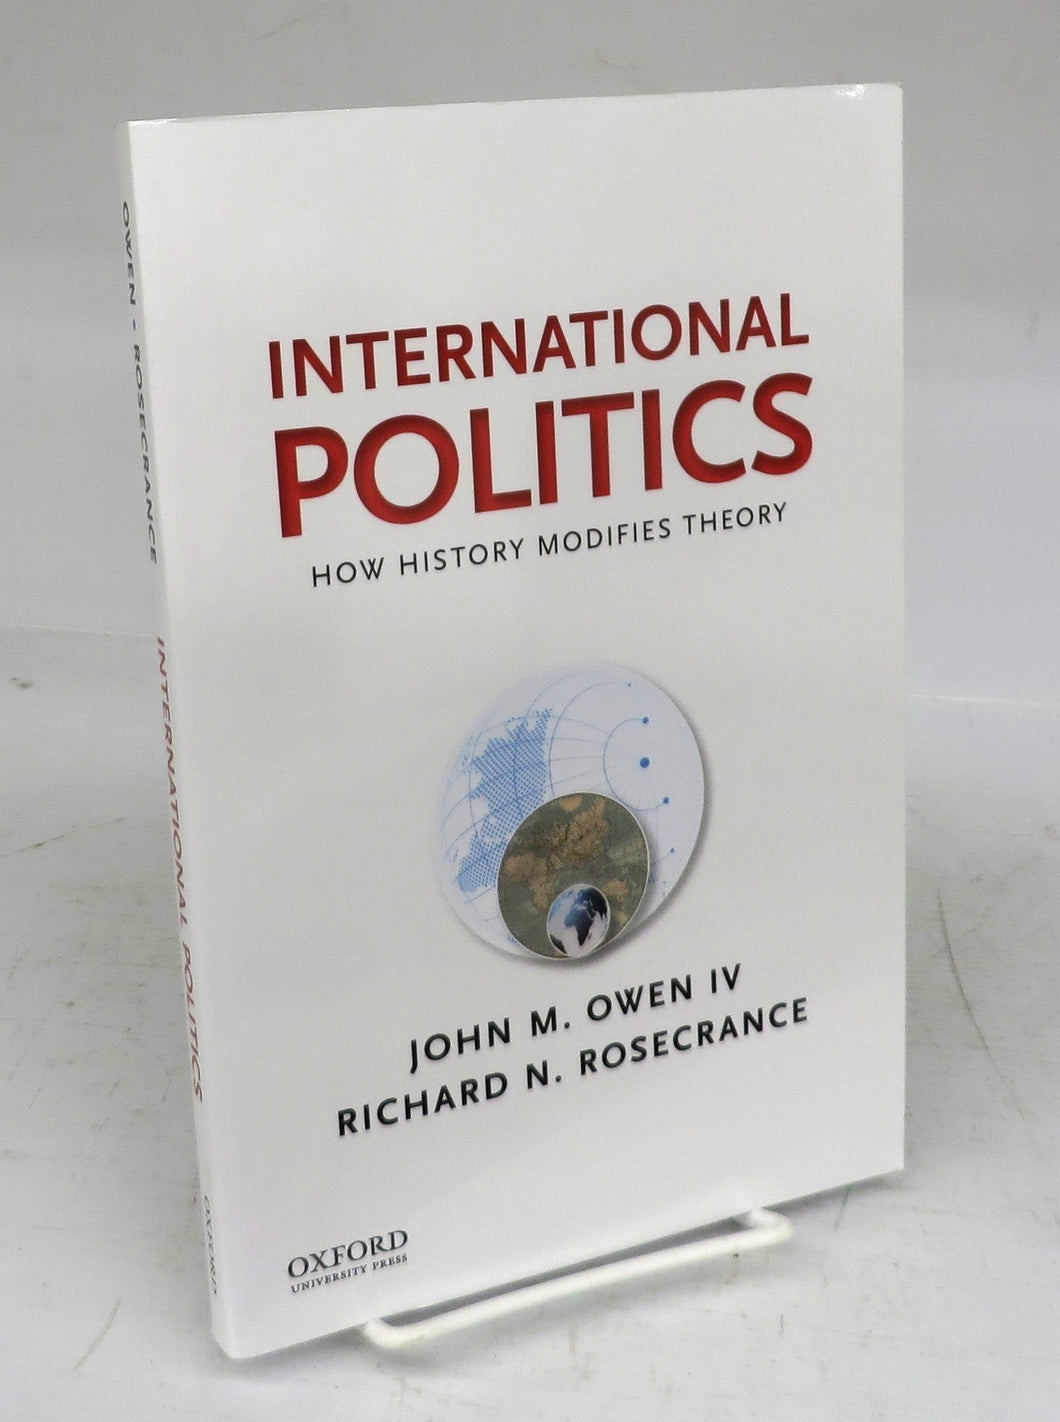 International Politics: How History Modifies Theory